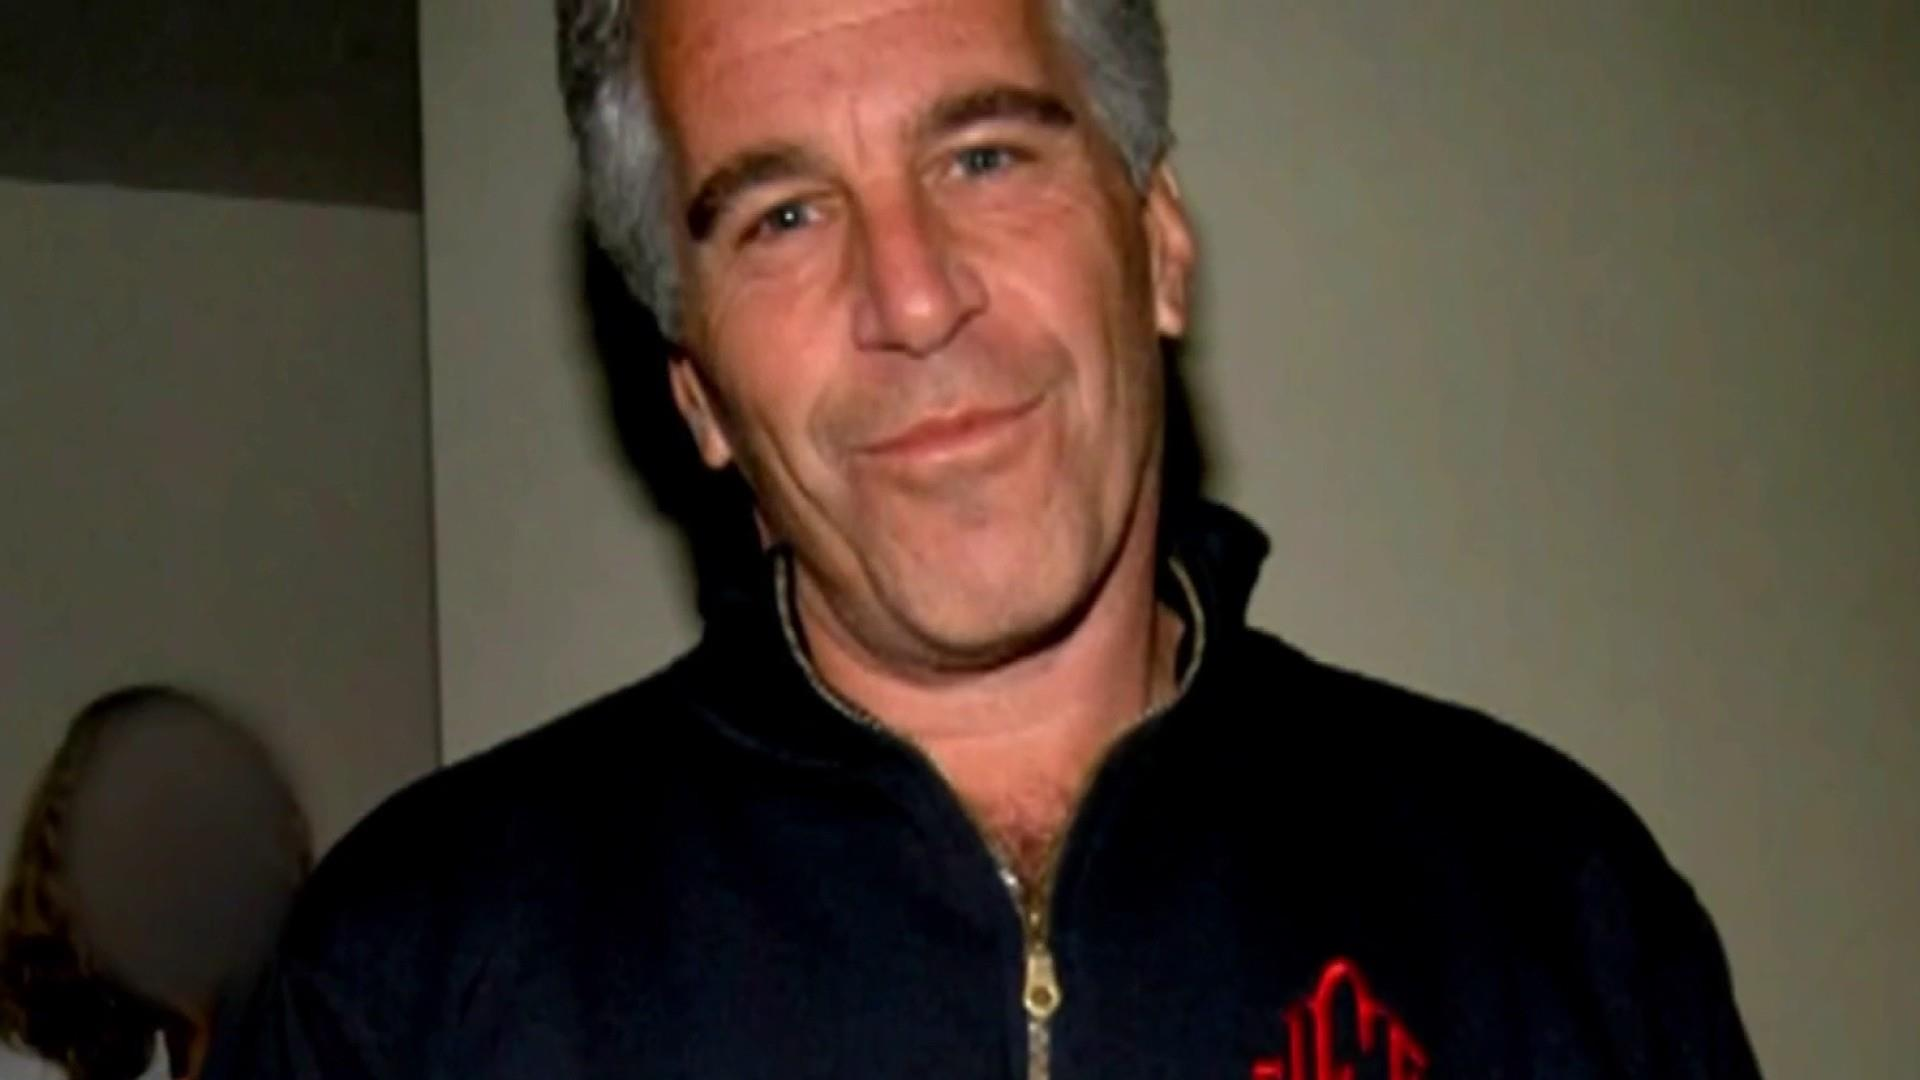 Epstein's fake passport, diamonds, cash might cost him bail